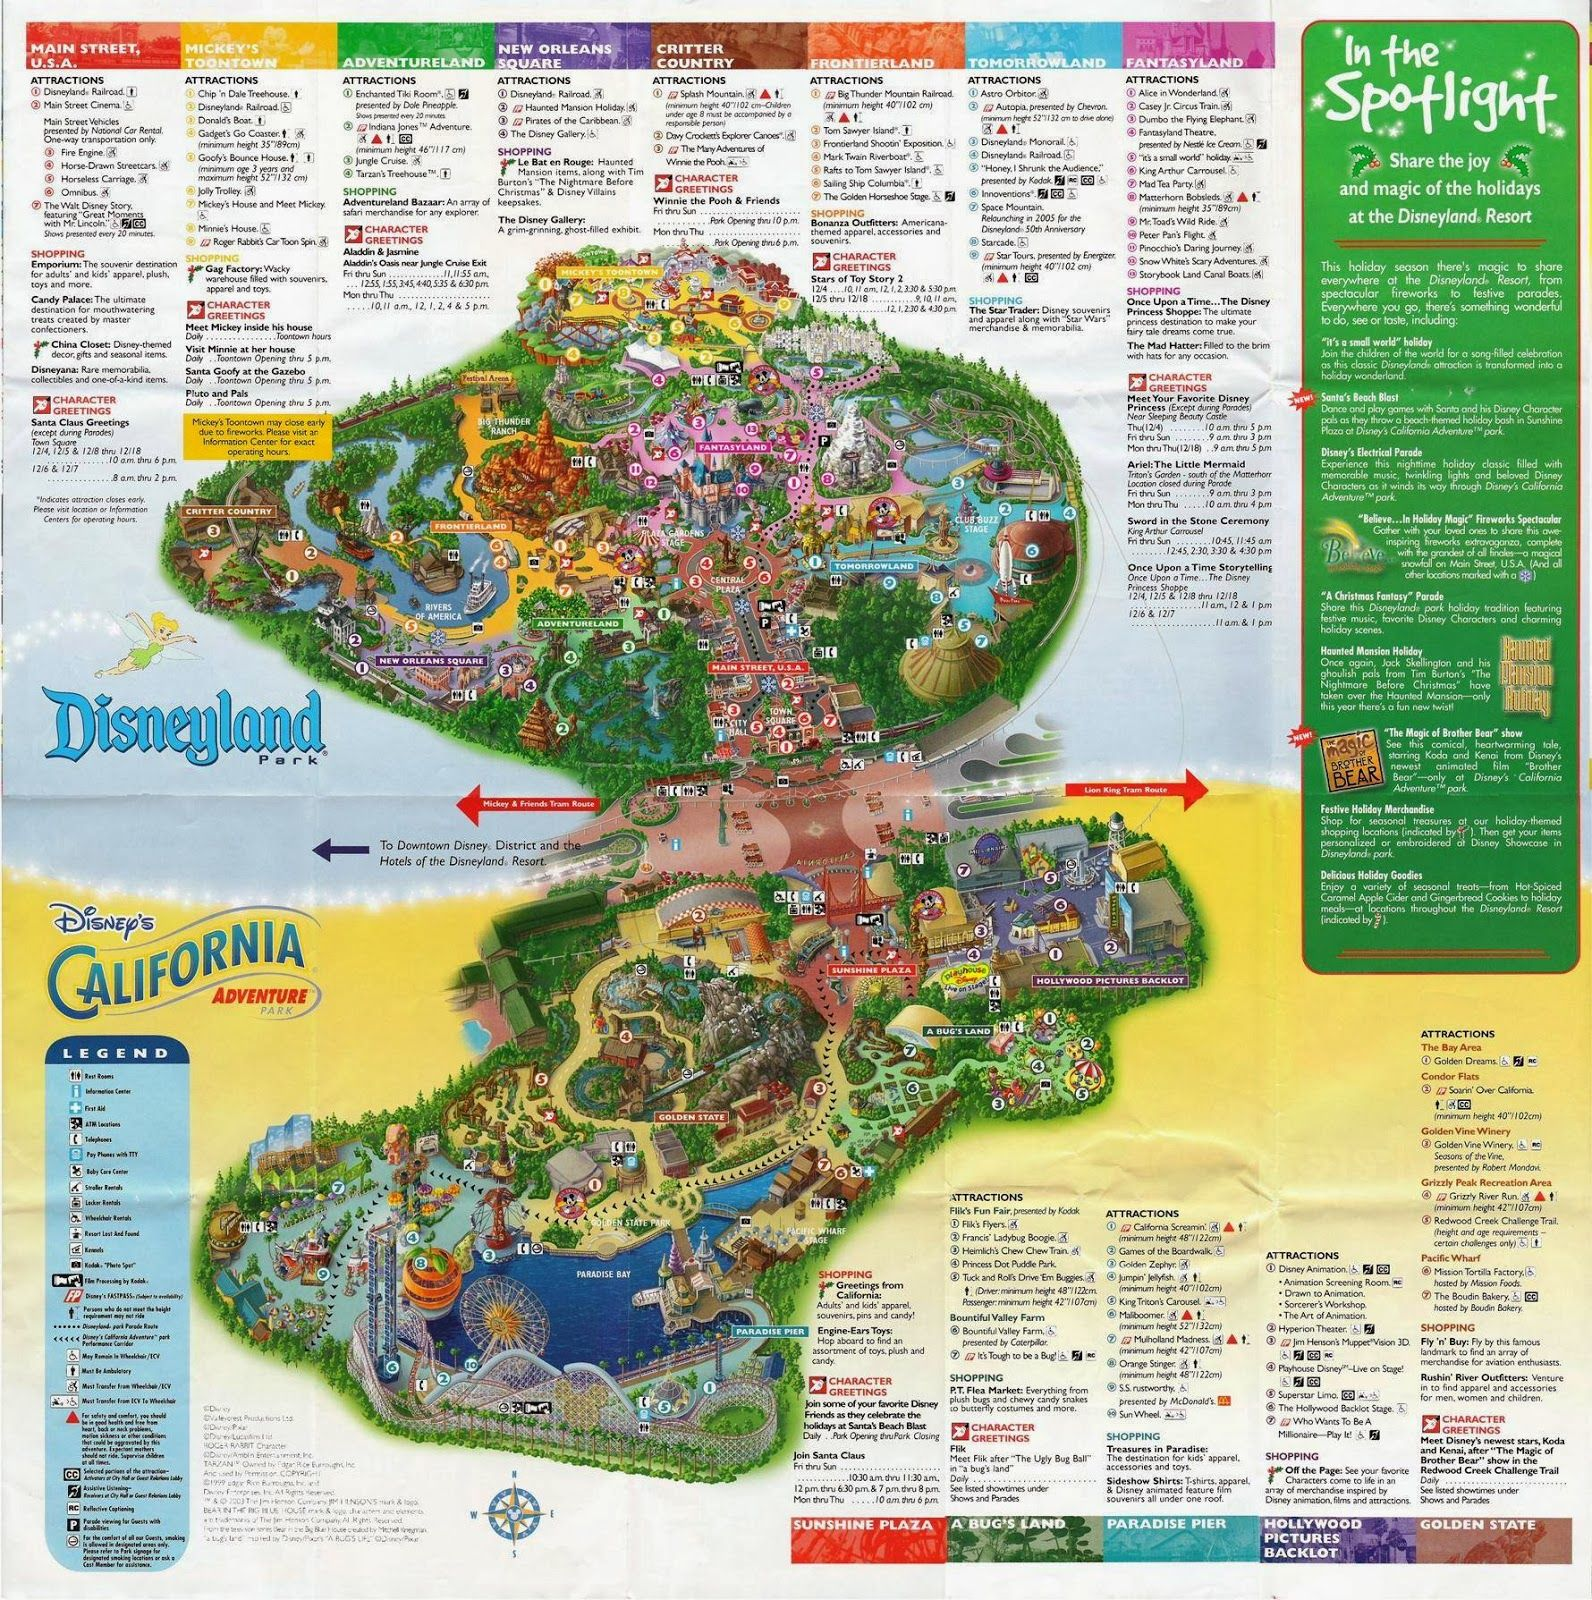 photo about Printable Disneyland Maps referred to as Disneyland Printable Park Map 2014 Report Track record : Disneyland+